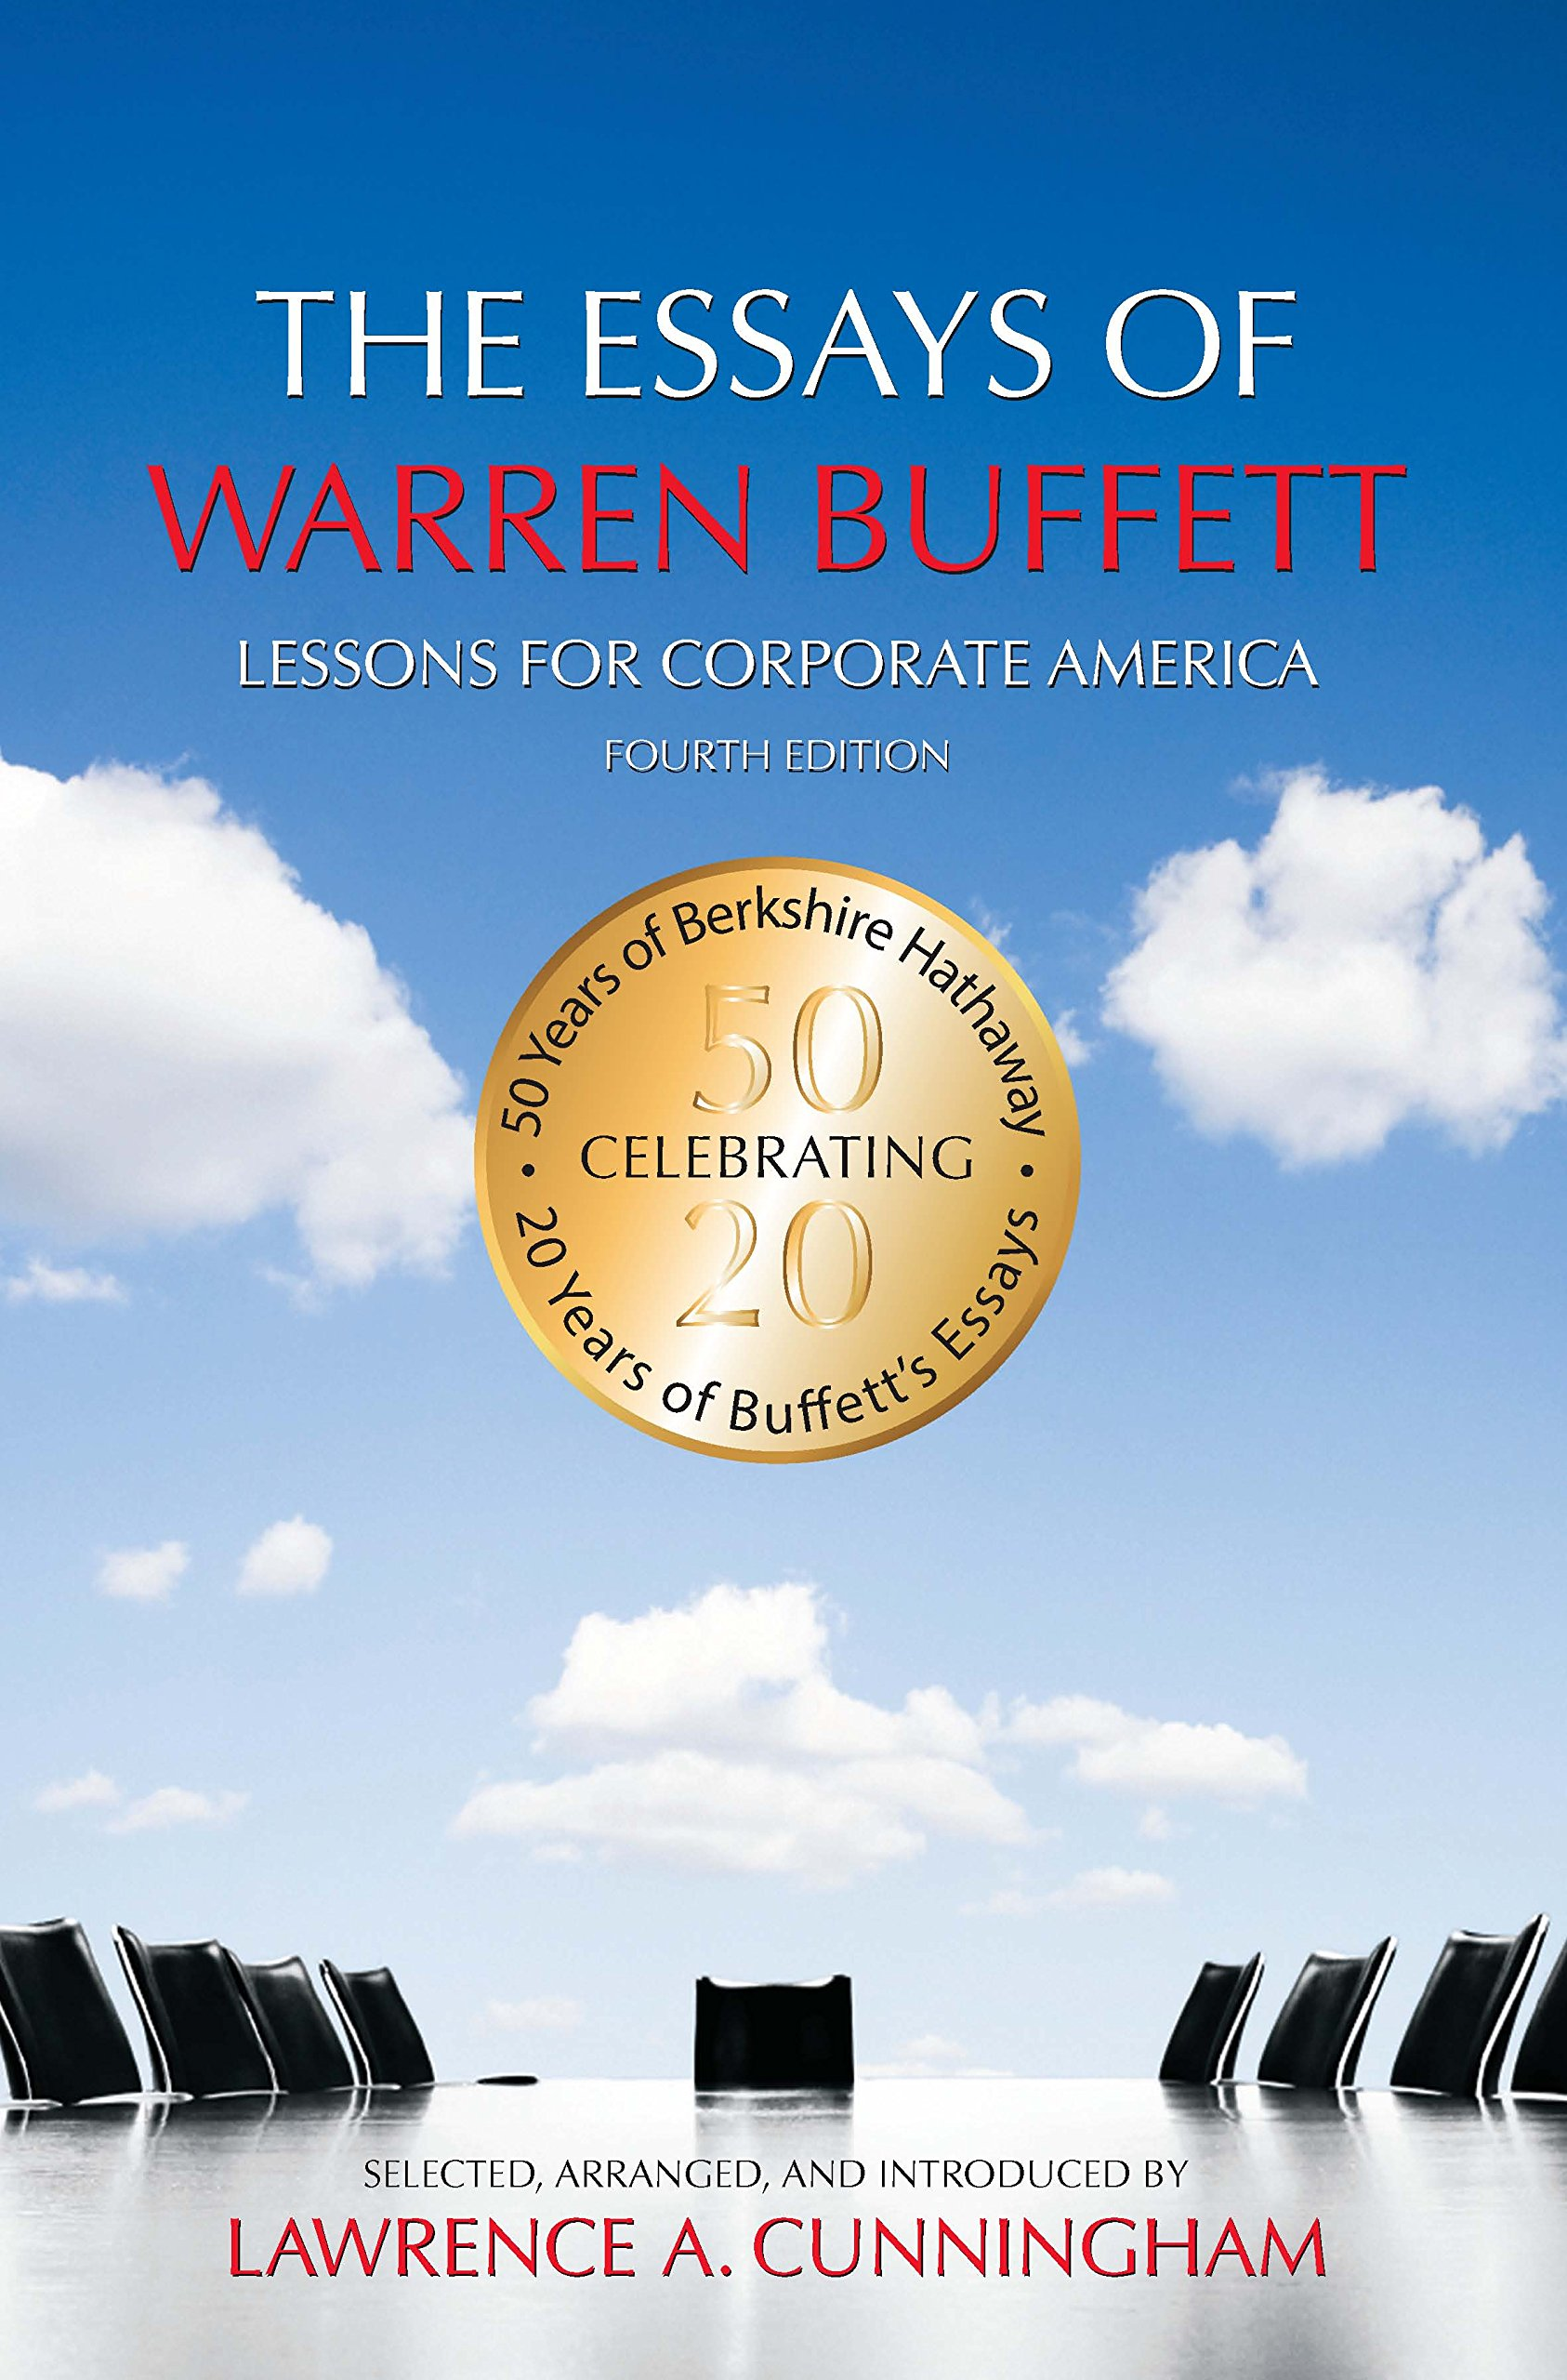 001 81wiv2brymel Essays Of Warren Buffett Essay Top 4th Edition The Pdf Free Full